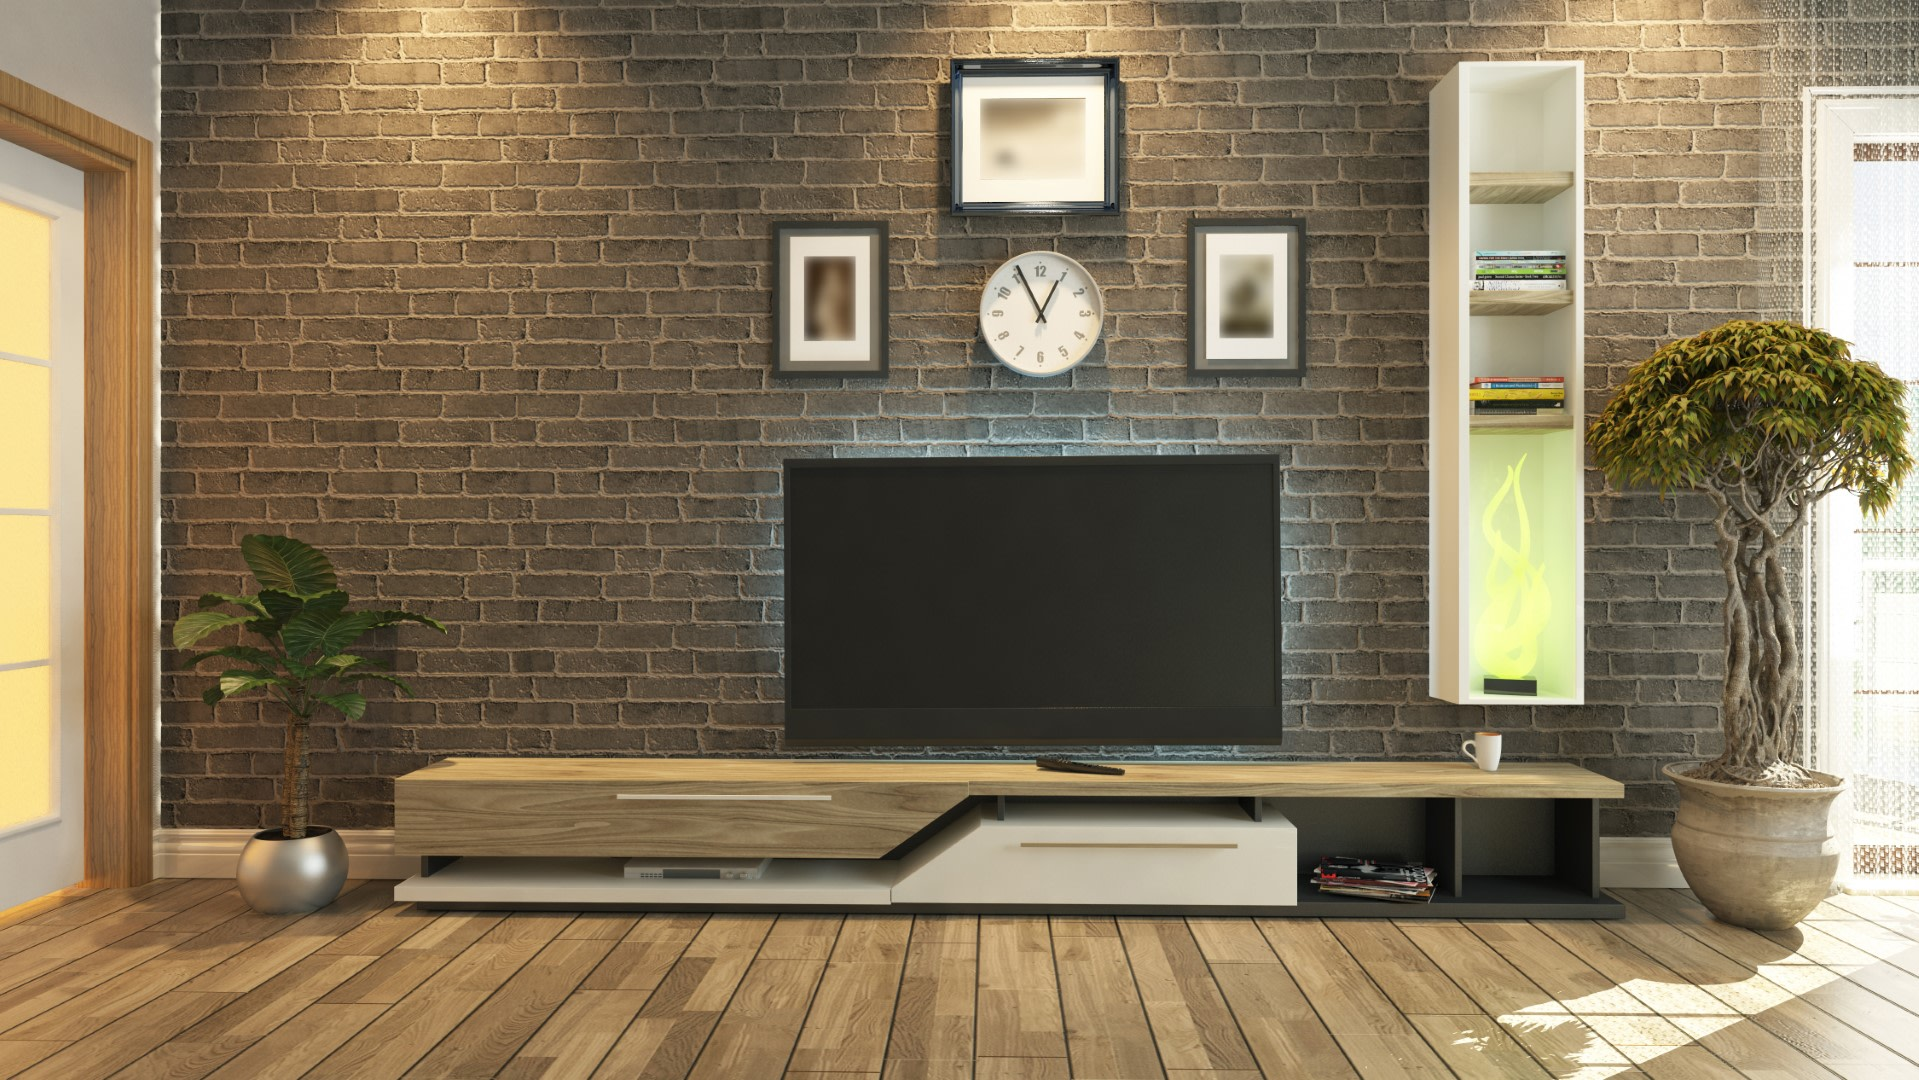 An image related to Top 75-Inch WebOS Smart TVs